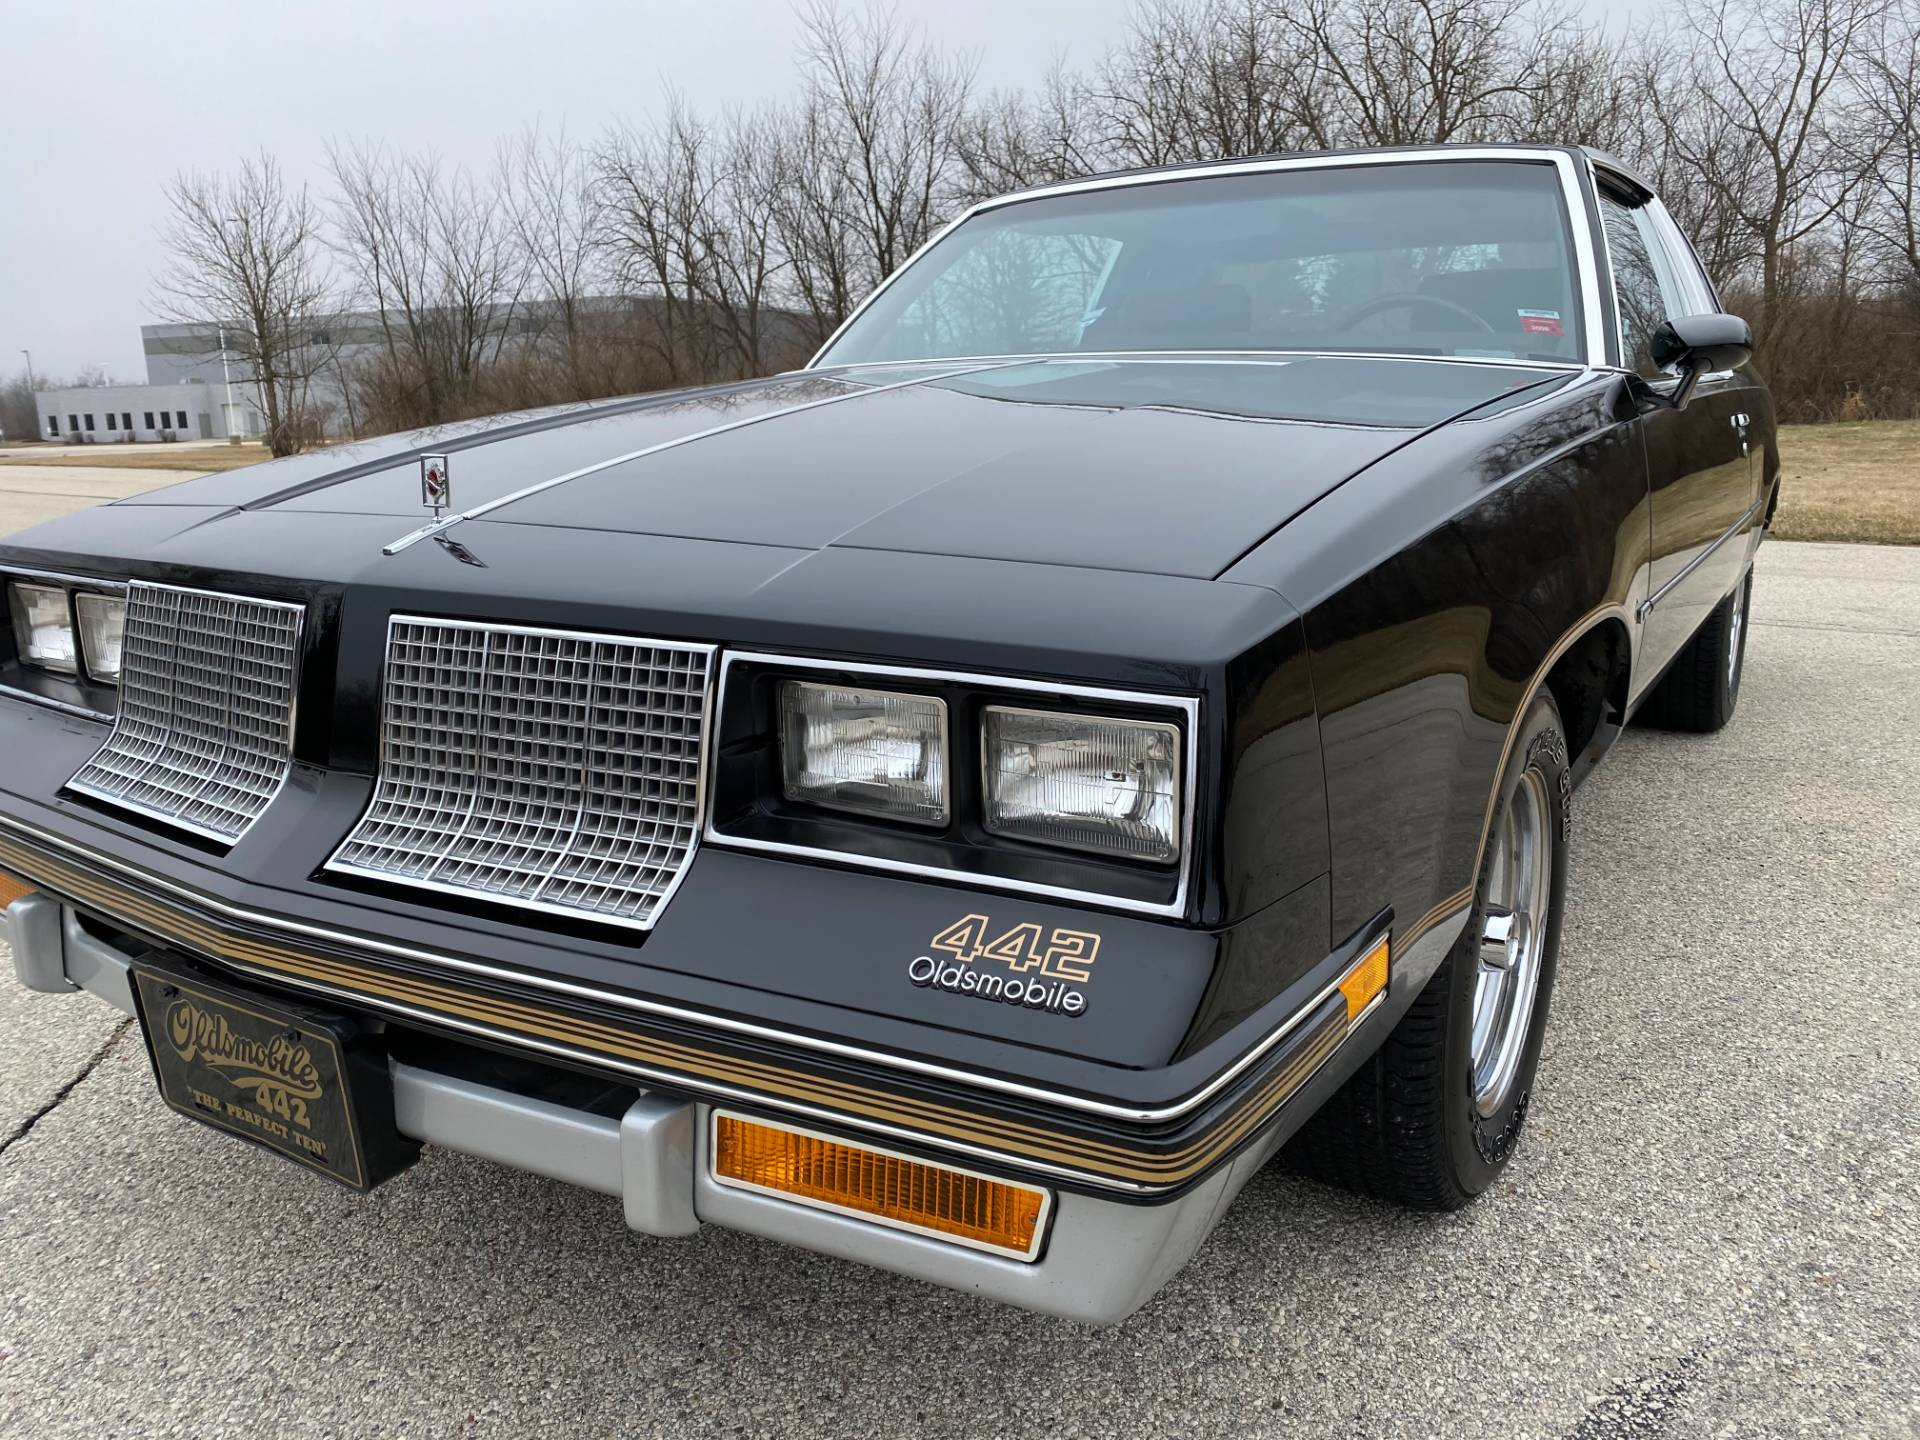 1985 Oldsmobile Cutlass Salon 442 in Big Bend, Wisconsin - Photo 149